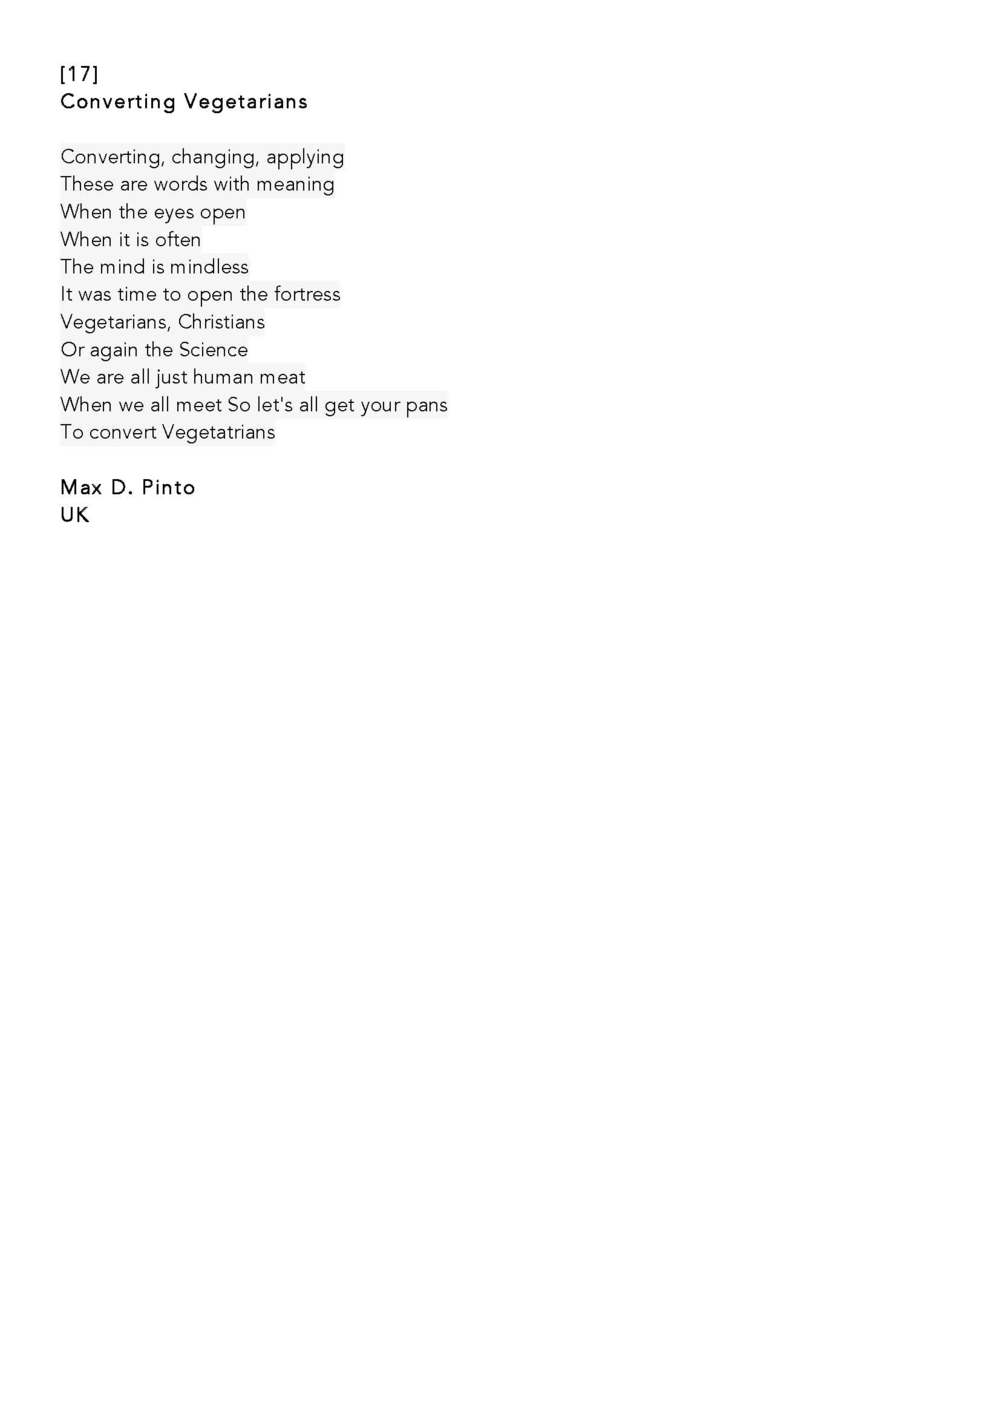 Poetry Collection - Everyone can Poetry _ For 13 Aug 2014--R1_Page_17.jpg